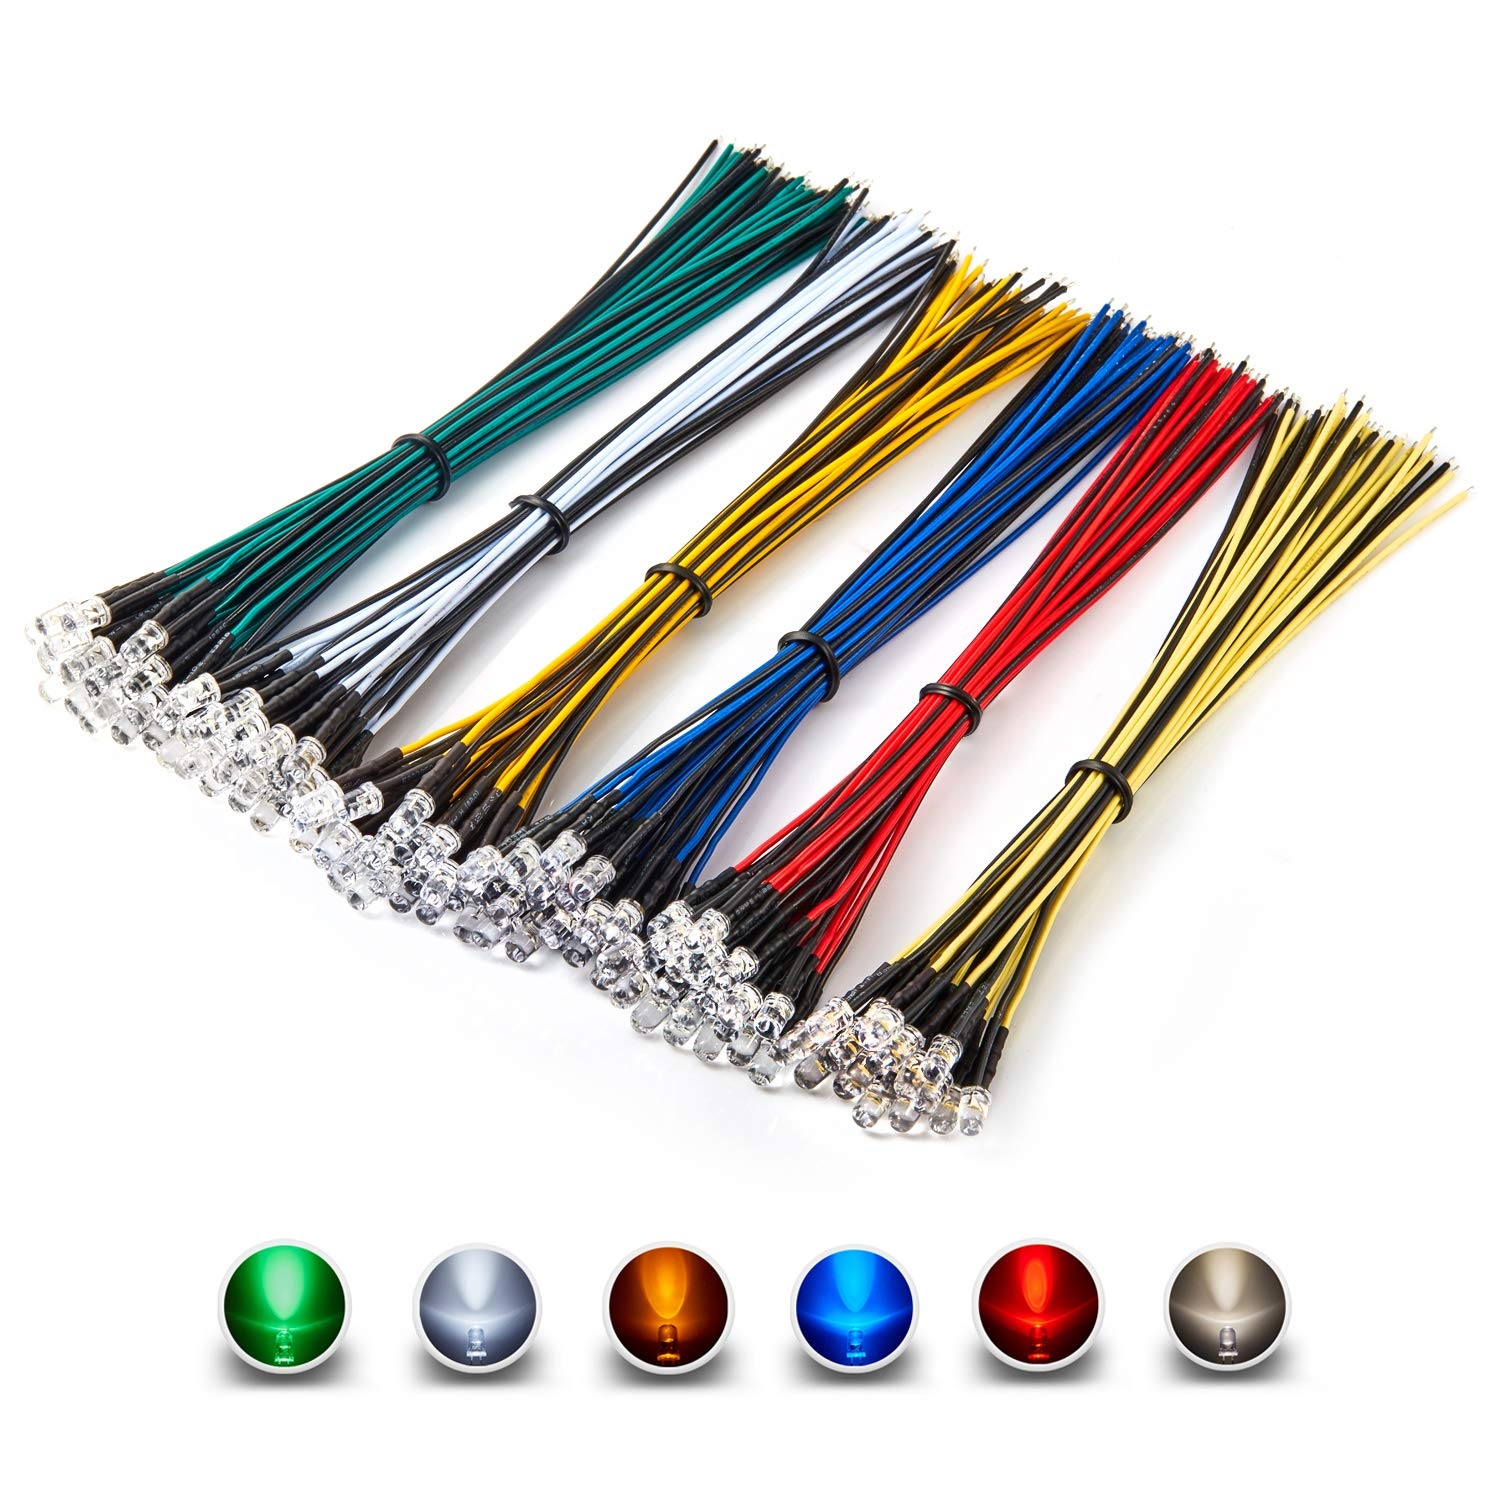 [UL Wire] Chanzon 120pcs (6 Colors x 20pcs) 12V 5mm LED Diode Lights 7.9 inch 24awg Pre Wired Assorted Kit (Transparent Clear Round Lens) White Red Green Blue Yellow Warm-White Emitting LED Assortment